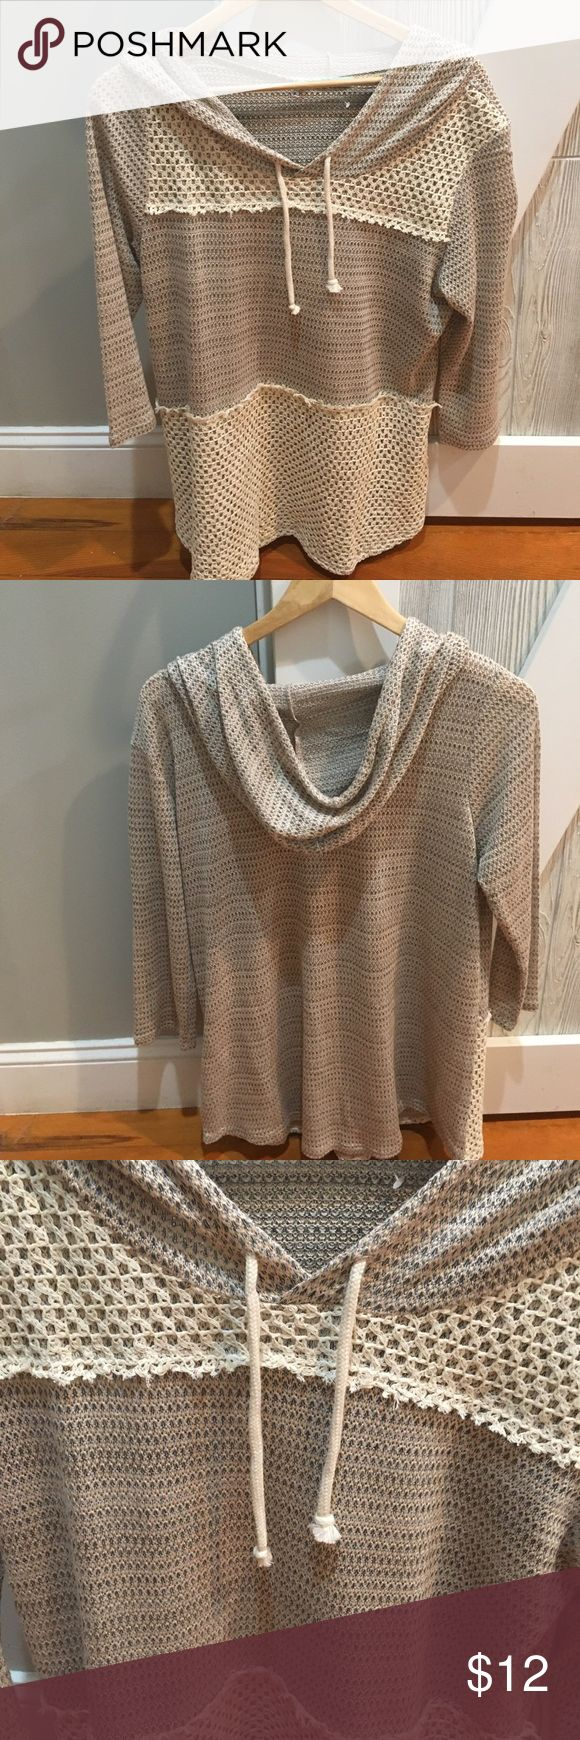 Light-weight woman's hoodie Tan/cream super cute hoodie - great formSpring!  Body is 50% rayon, 37% polyester an 3% spandex.  Crochet parts are 100% cotton.  Excellent condition. Maurices Tops Sweatshirts & Hoodies